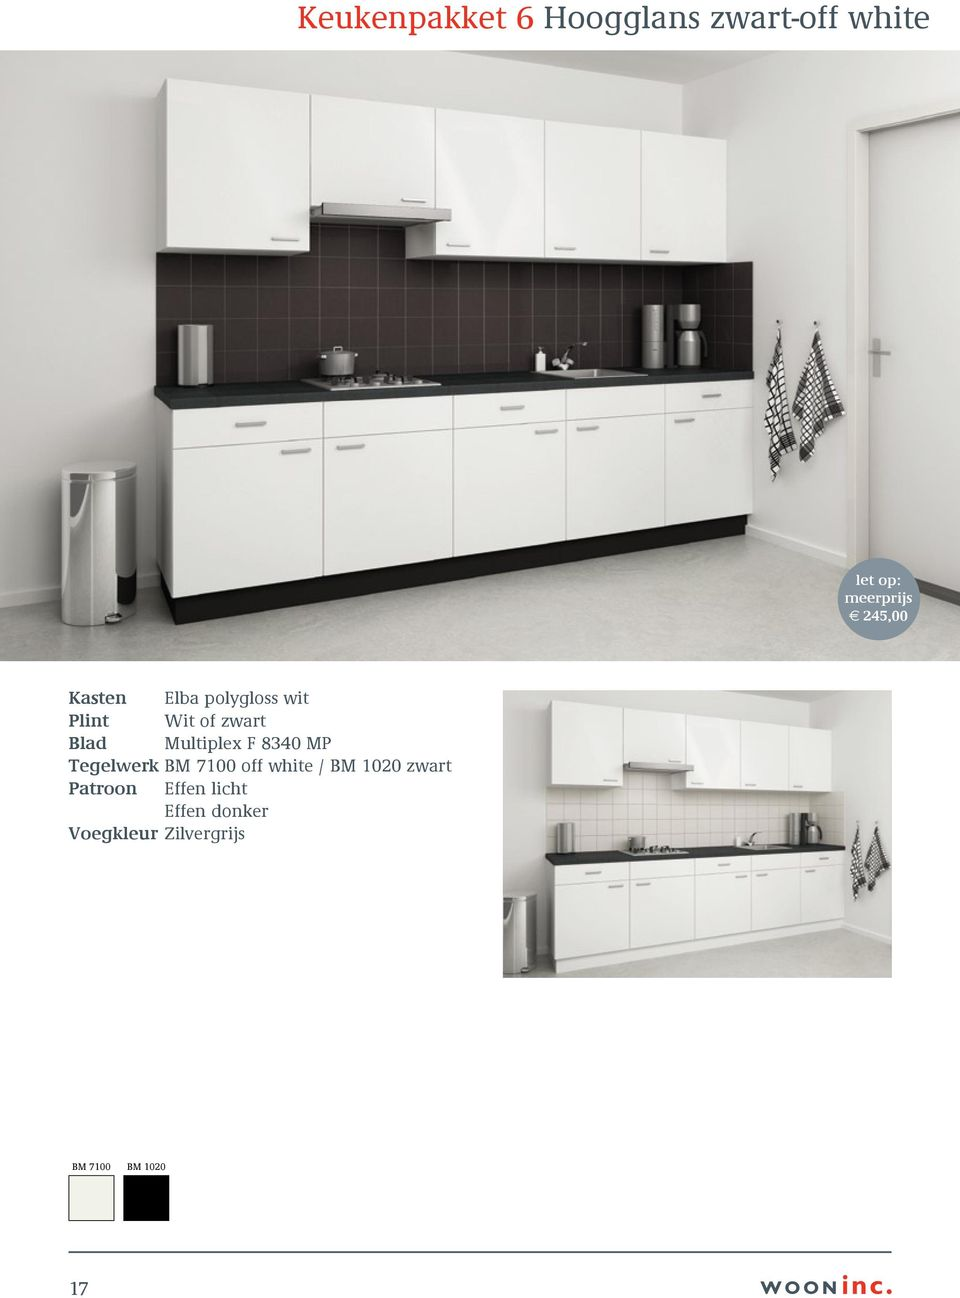 Multiplex F 8340 MP Tegelwerk BM 7100 off white / BM 1020 zwart